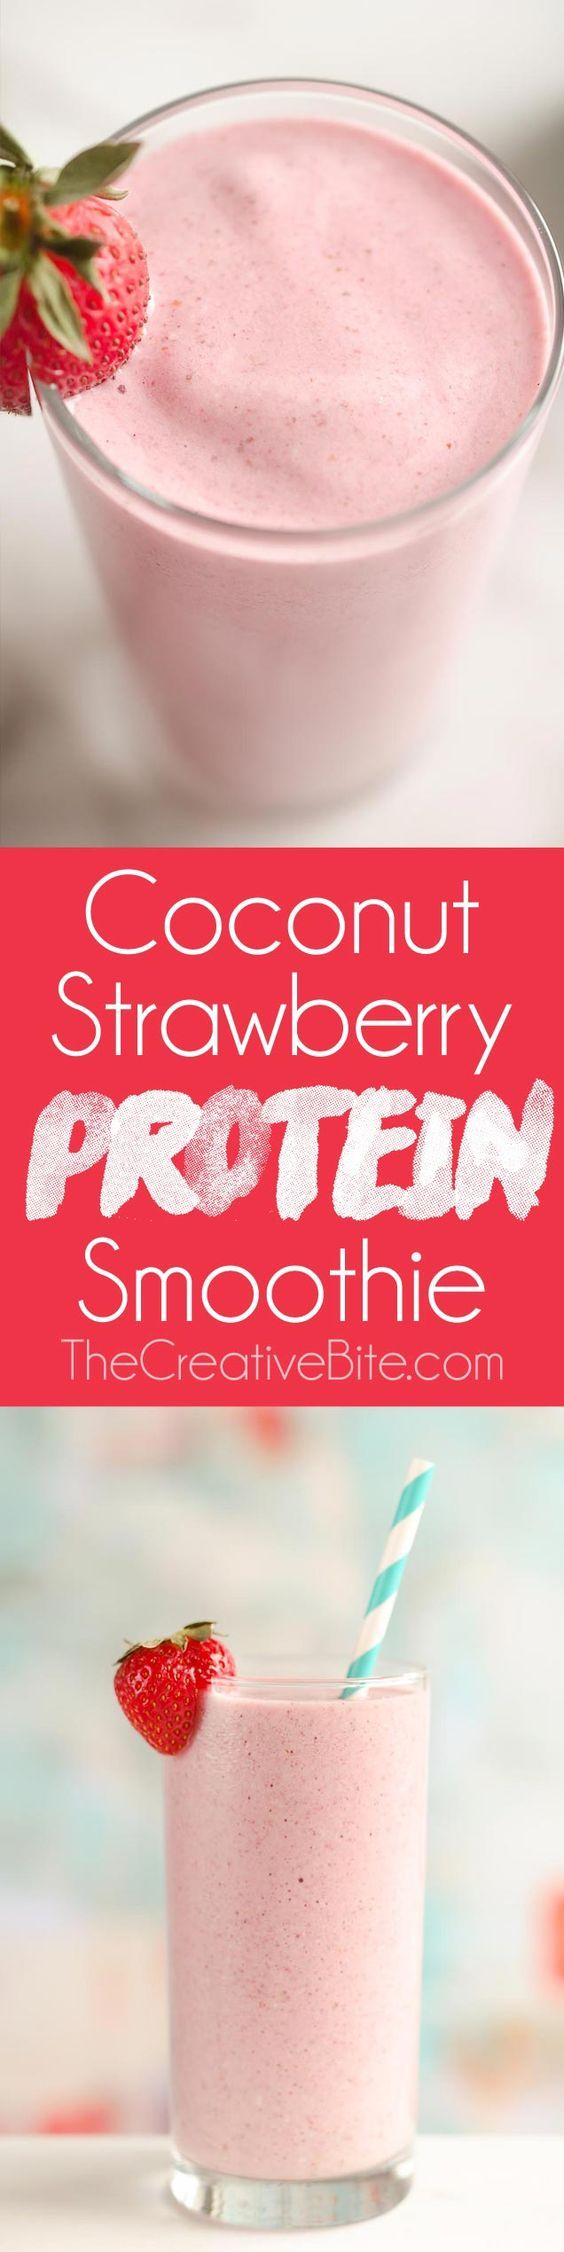 This Coconut Strawberry Protein Smoothie is a fresh and healthy breakfast or snack that will fill you up and satisfy your sweet tooth! Frozen strawberries are blended with coconut milk and a mixture of protein powder, chia seeds, and more for a refreshing beverage you will love. #Strawberry #Protein #Smoothie